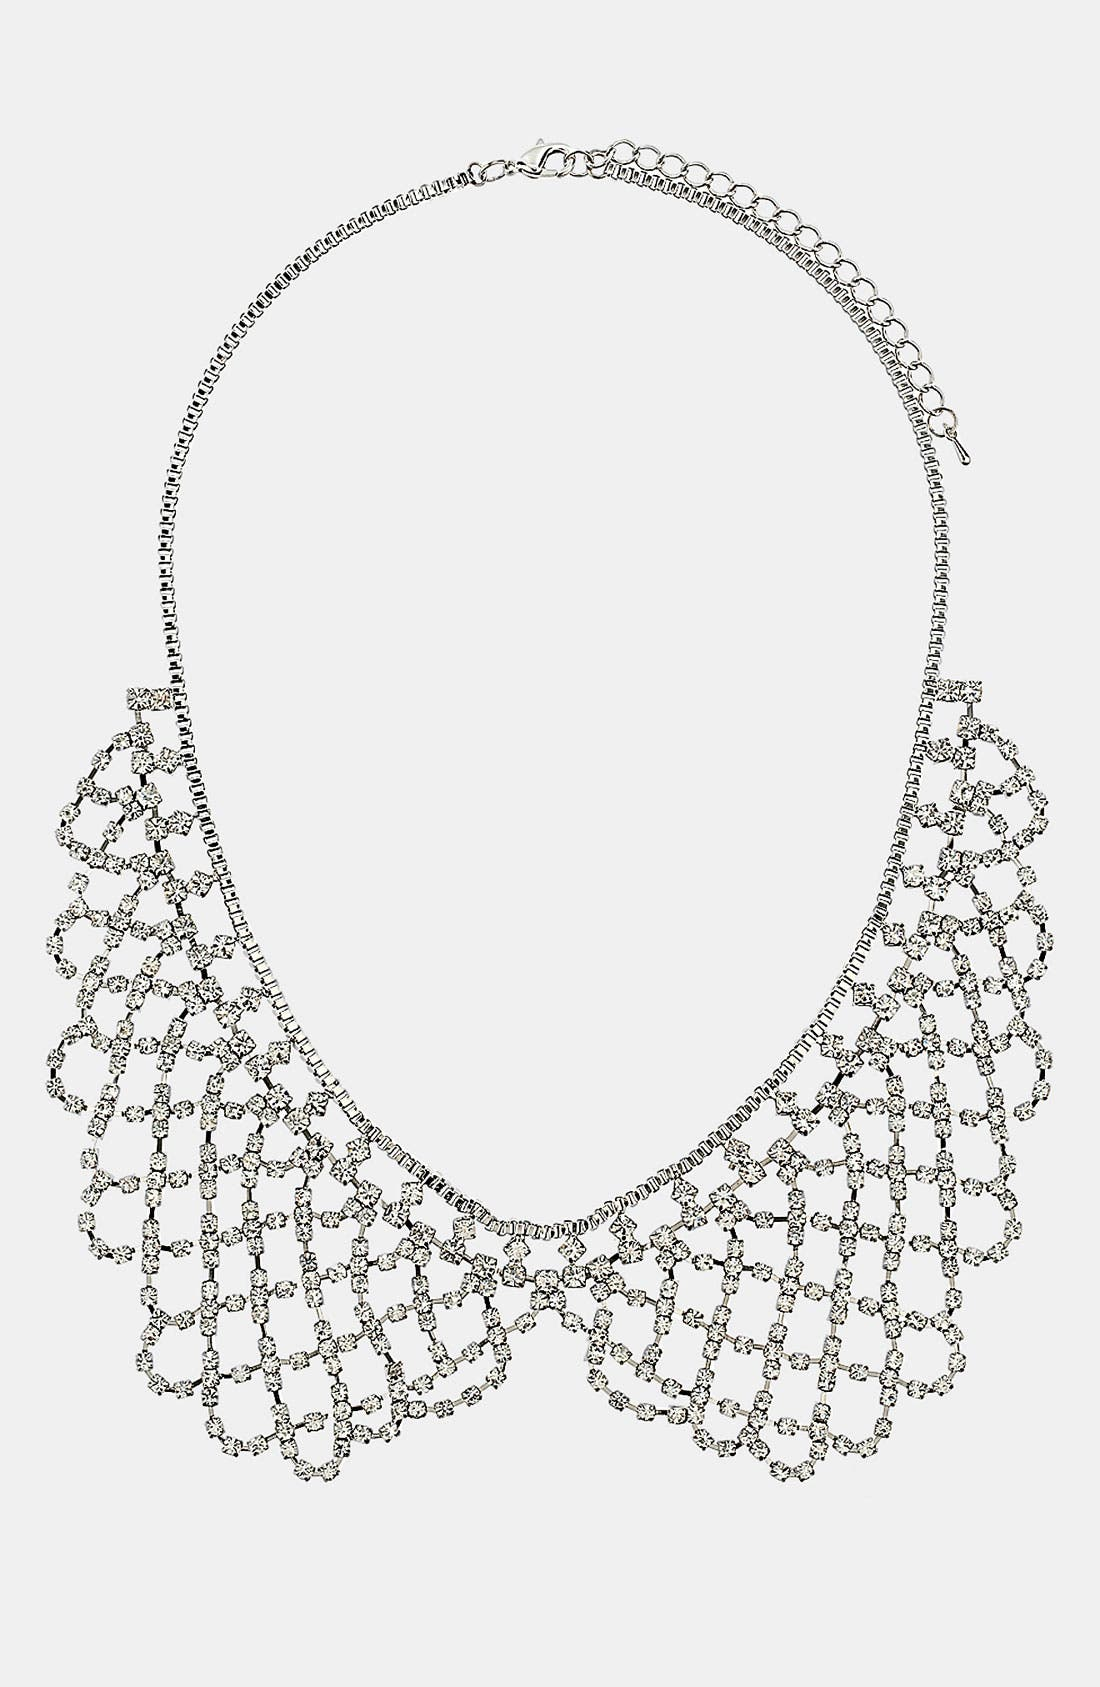 Alternate Image 1 Selected - Topshop Rhinestone Peter Pan Collar Necklace